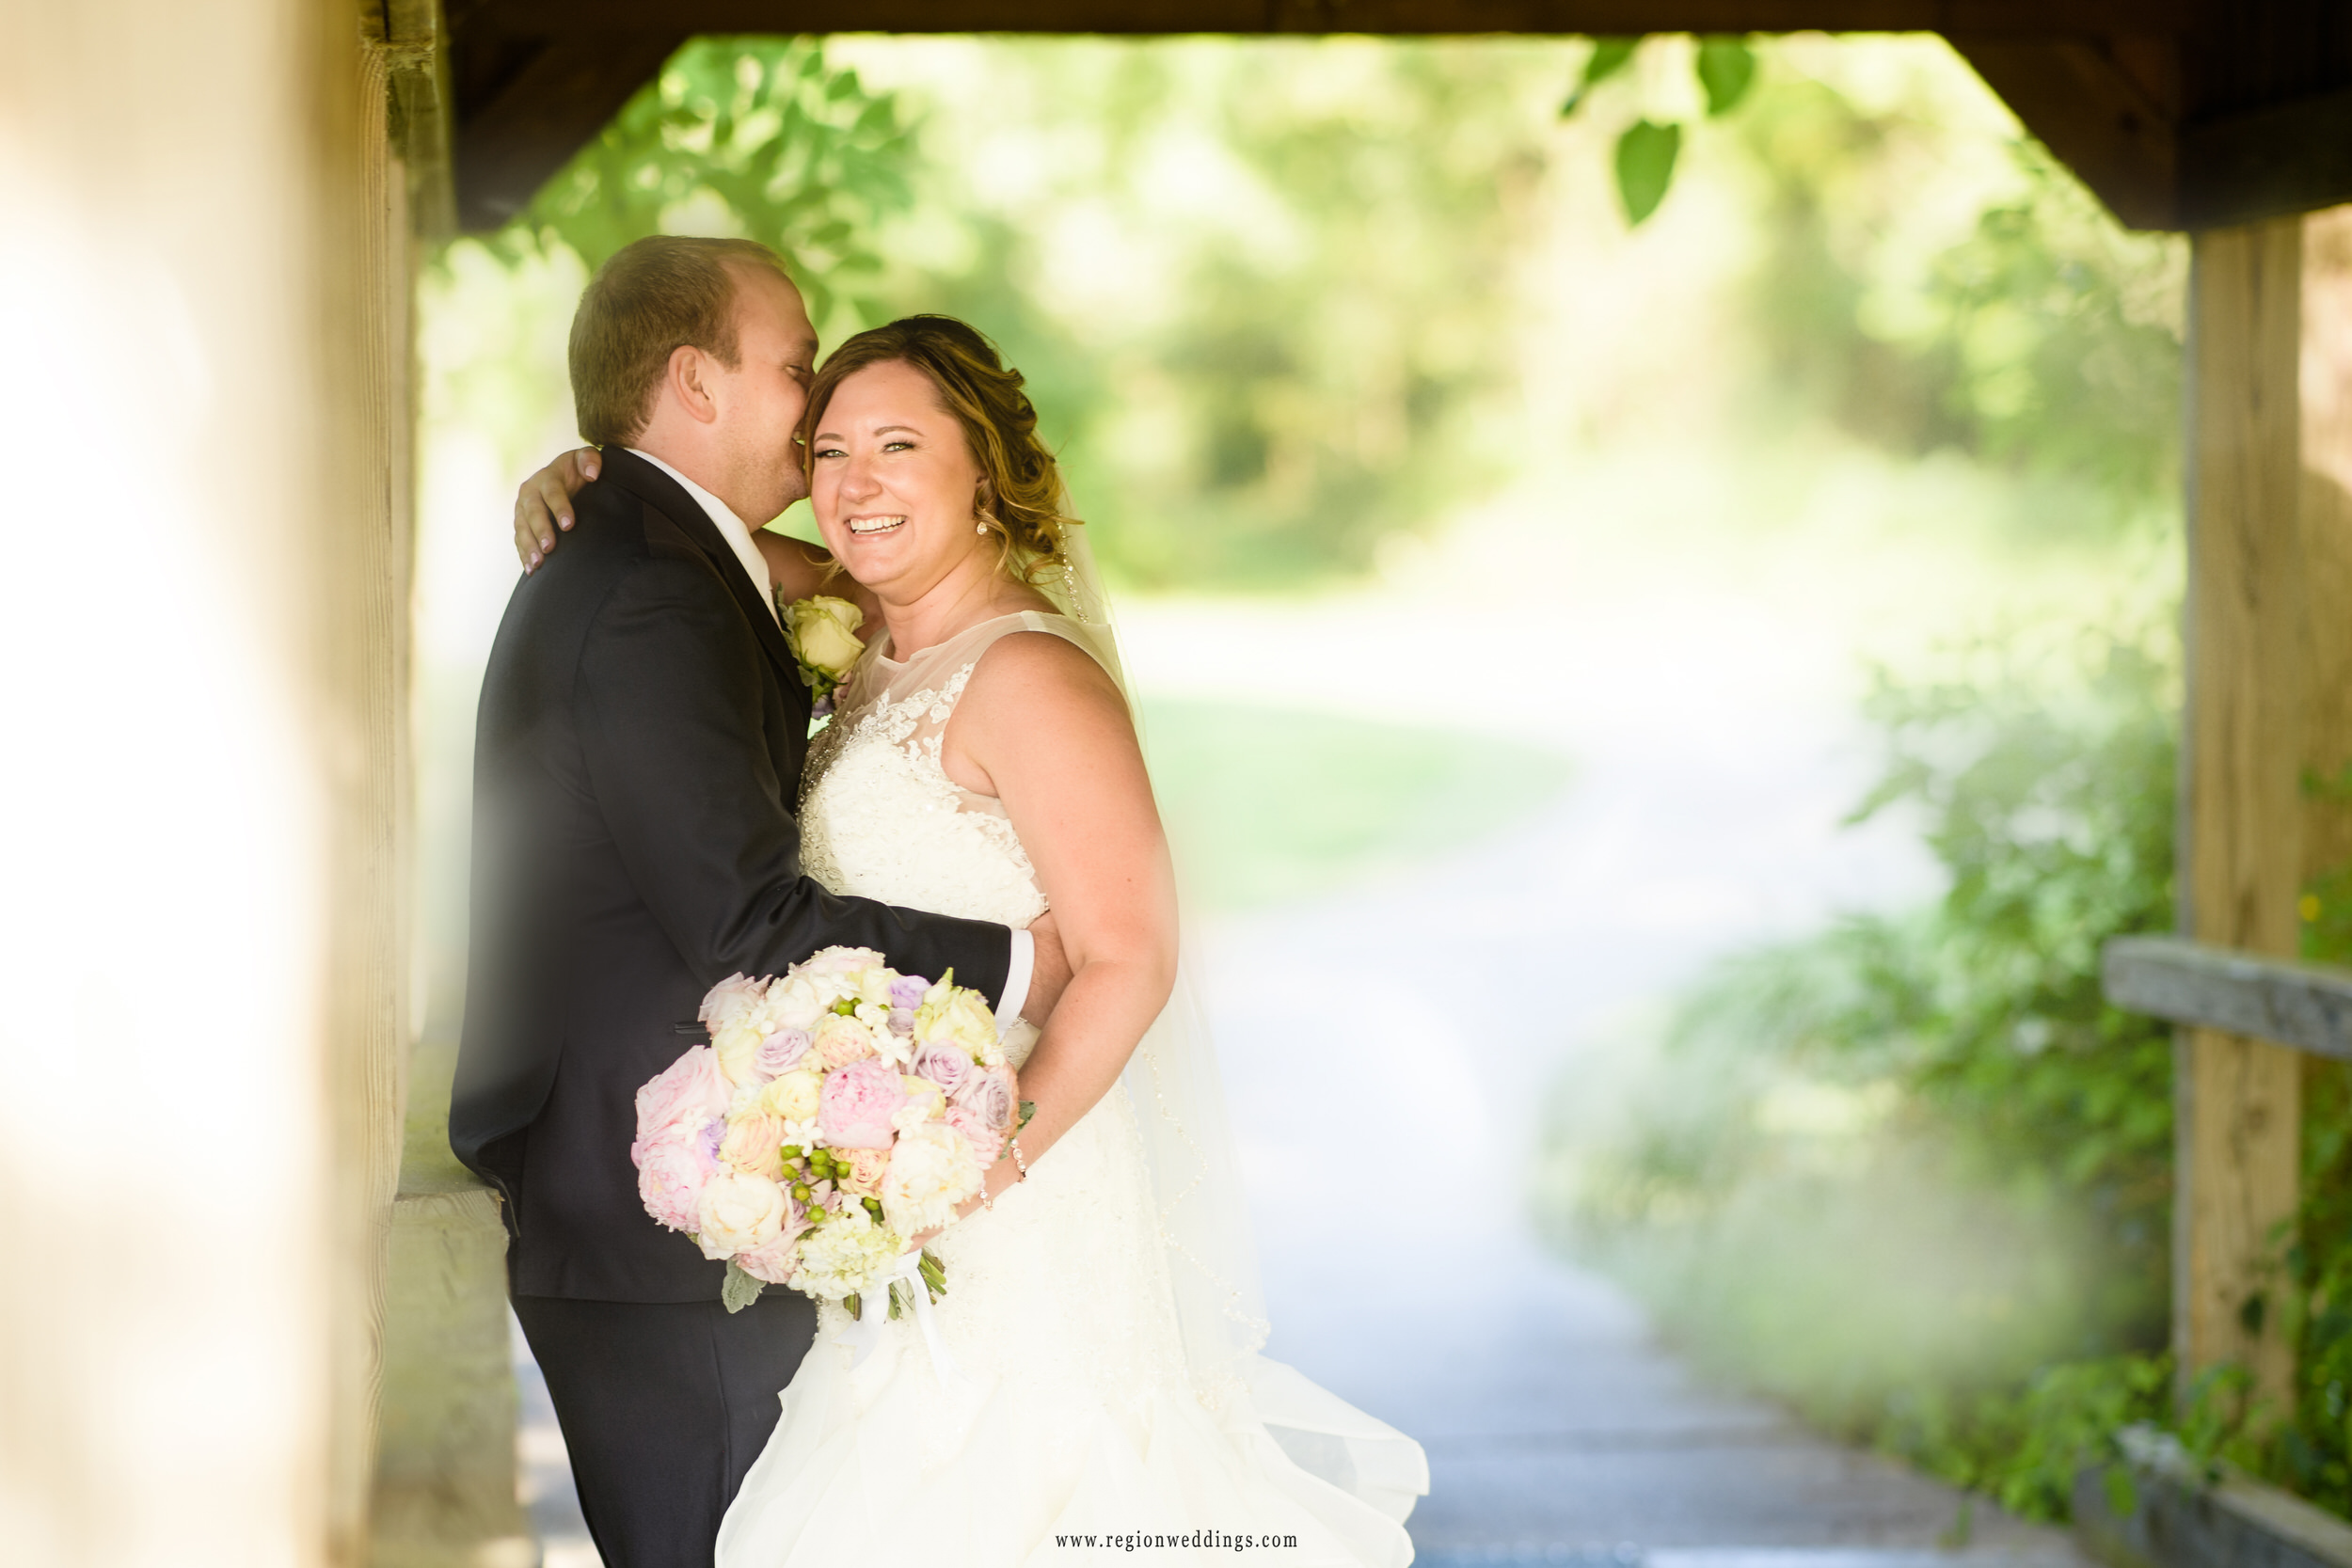 A candid moment between bride and groom underneath the covered bridge at Sand Creek golf course.